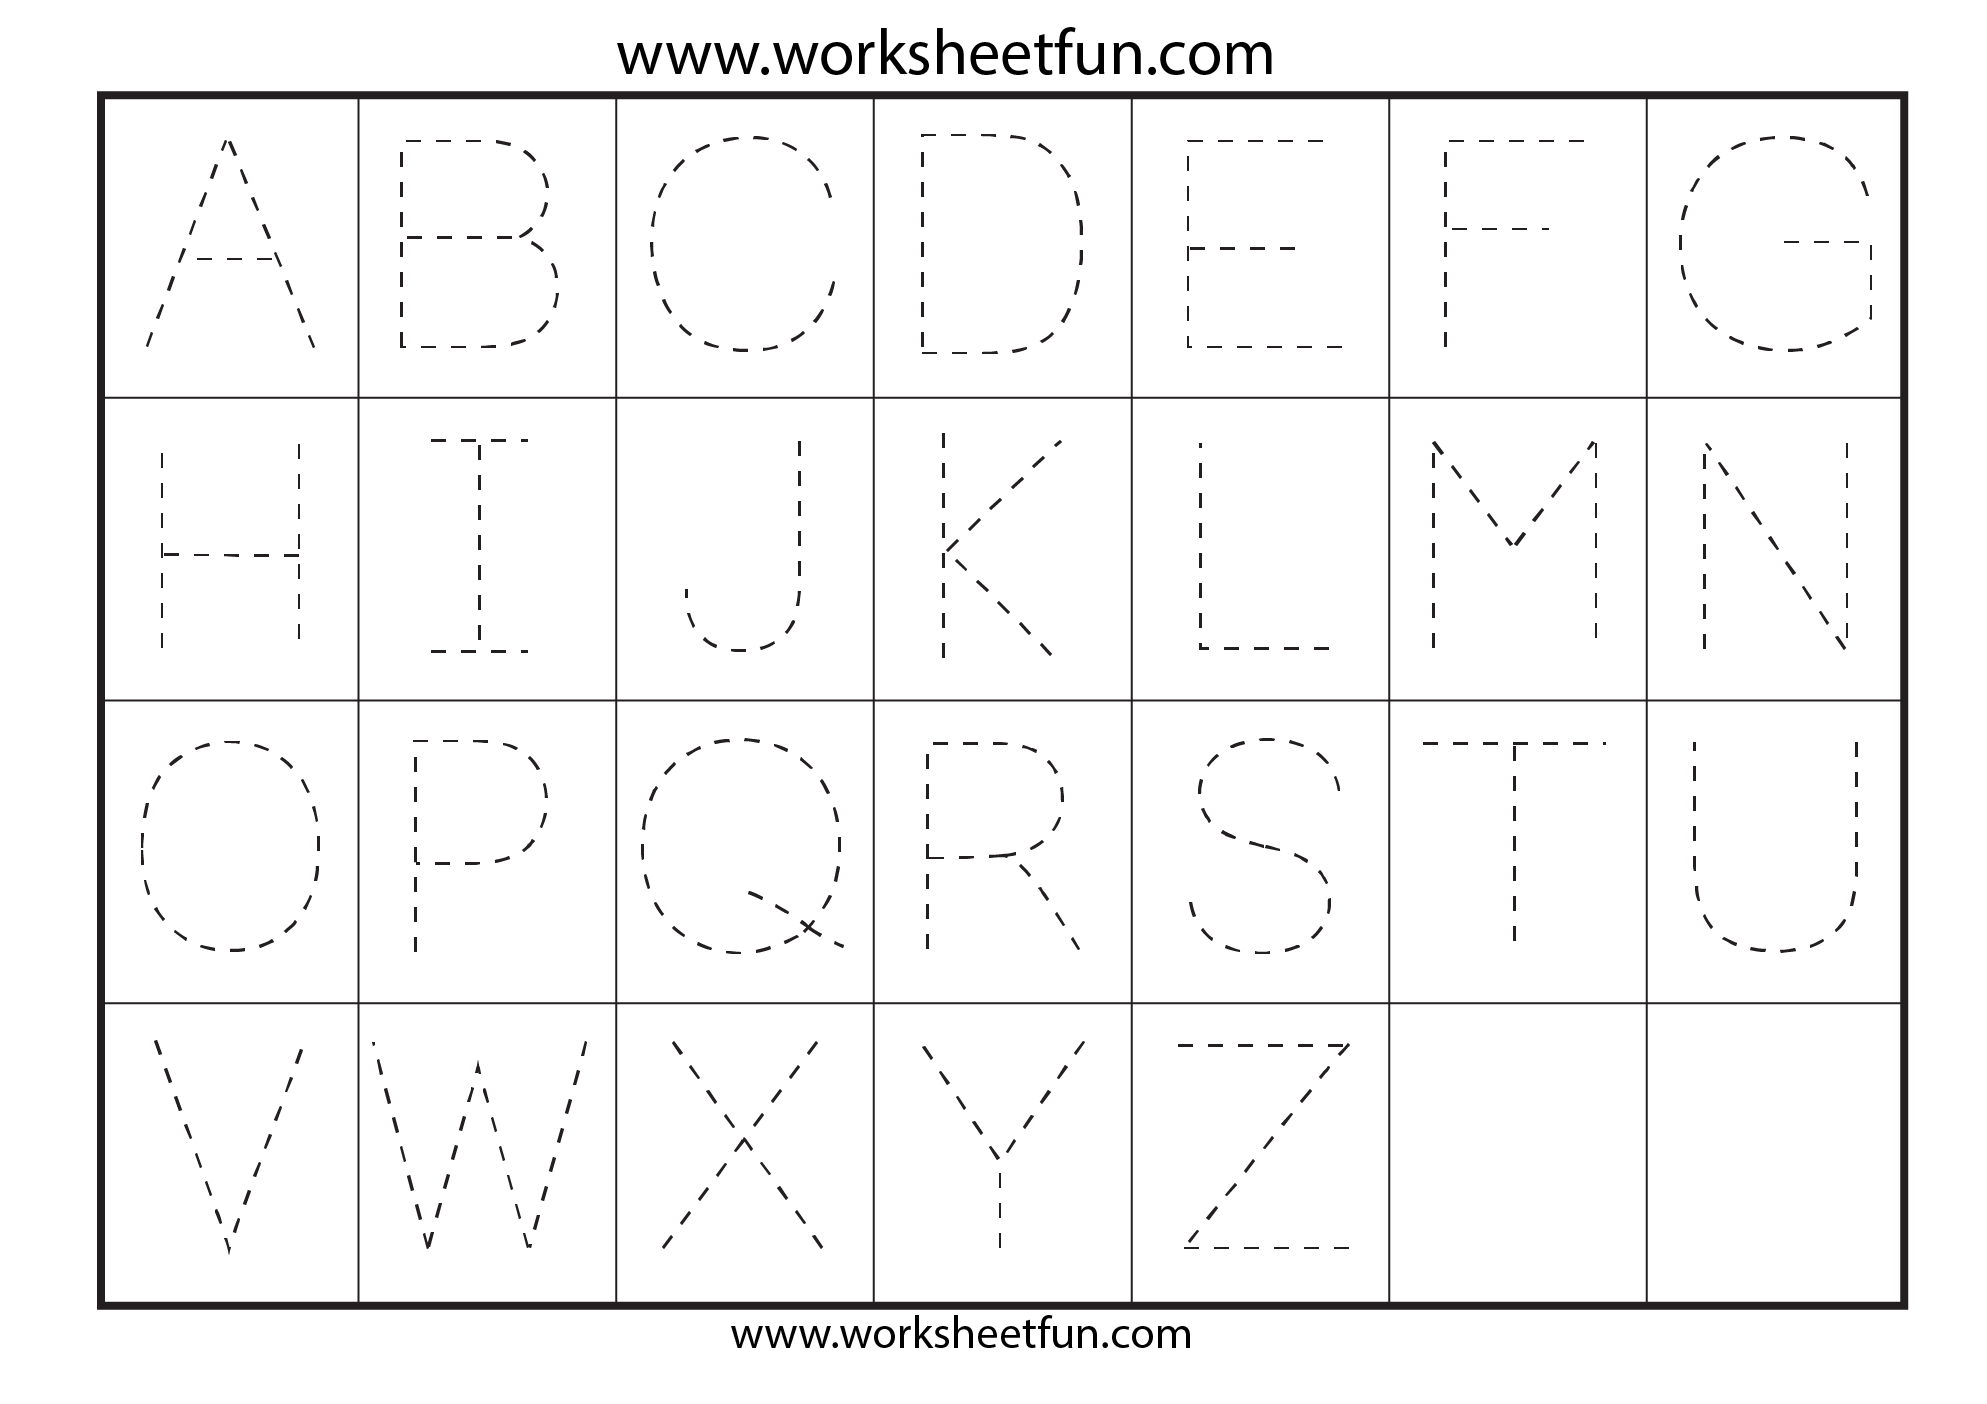 Printables Pre-k Worksheets Alphabet Tracing worksheets pre k letter laurenpsyk free i printable the worksheets